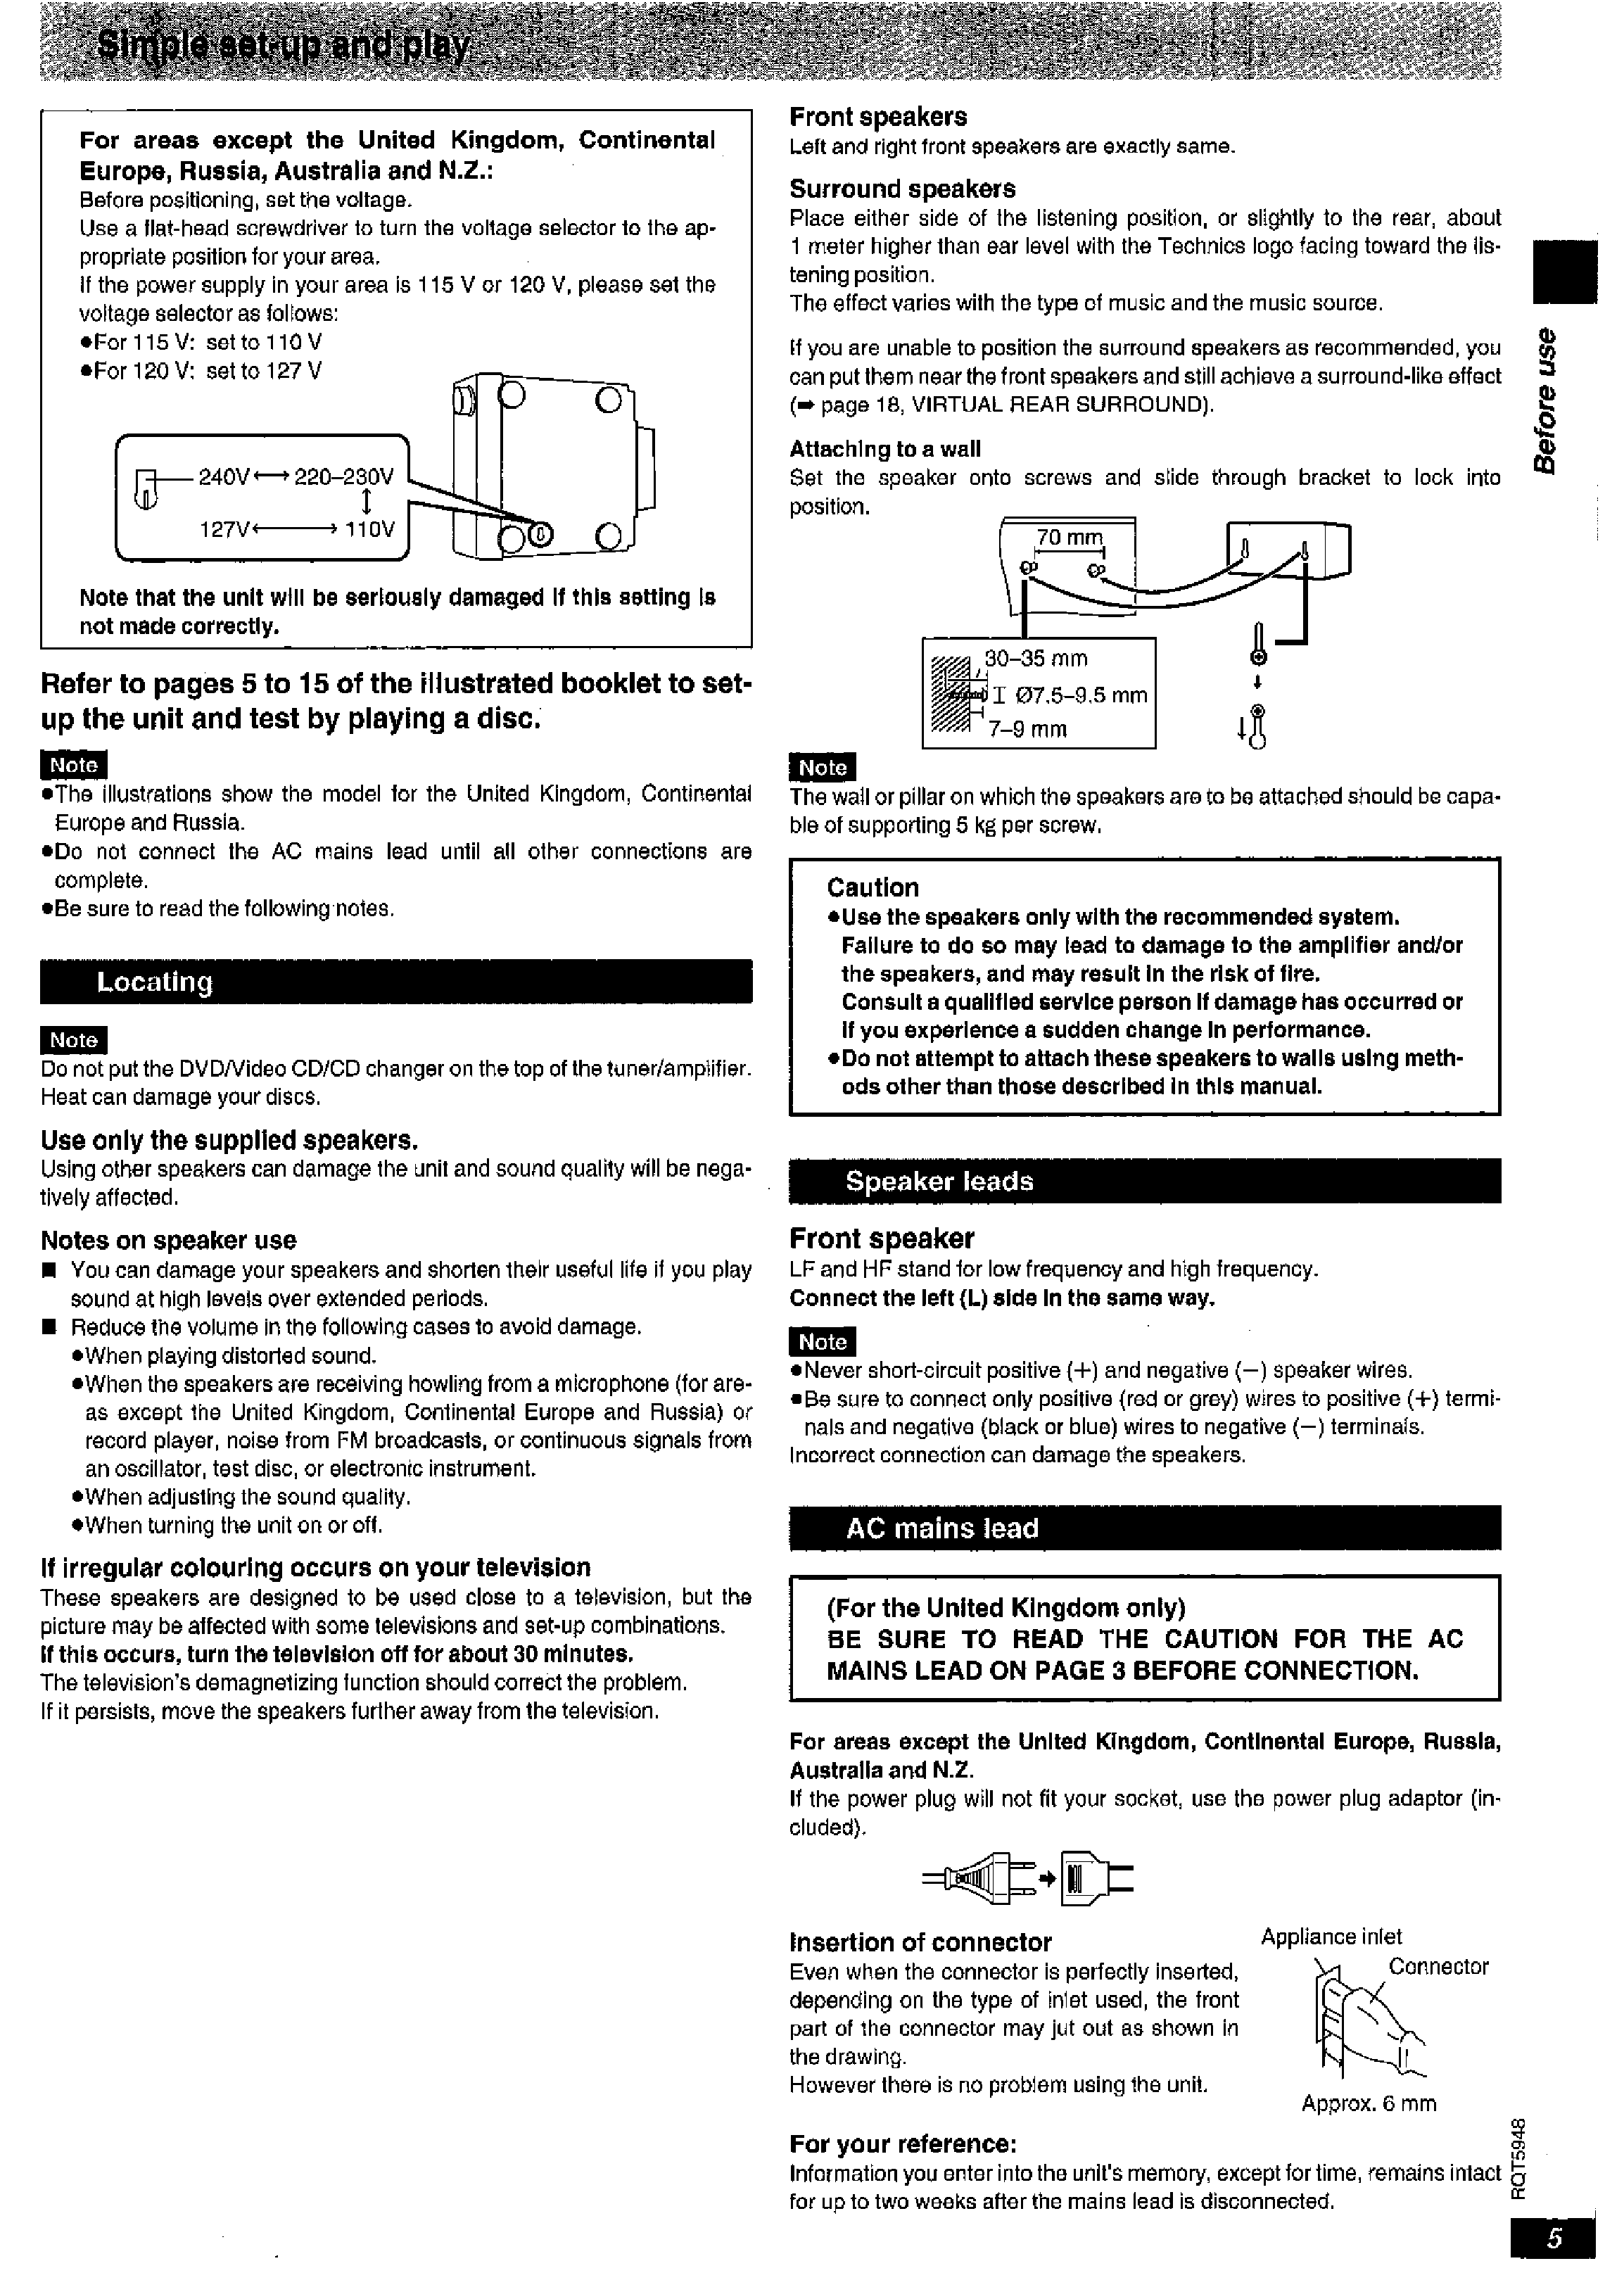 TECHNICS SC-DV250 - Owner's Manual Immediate Download